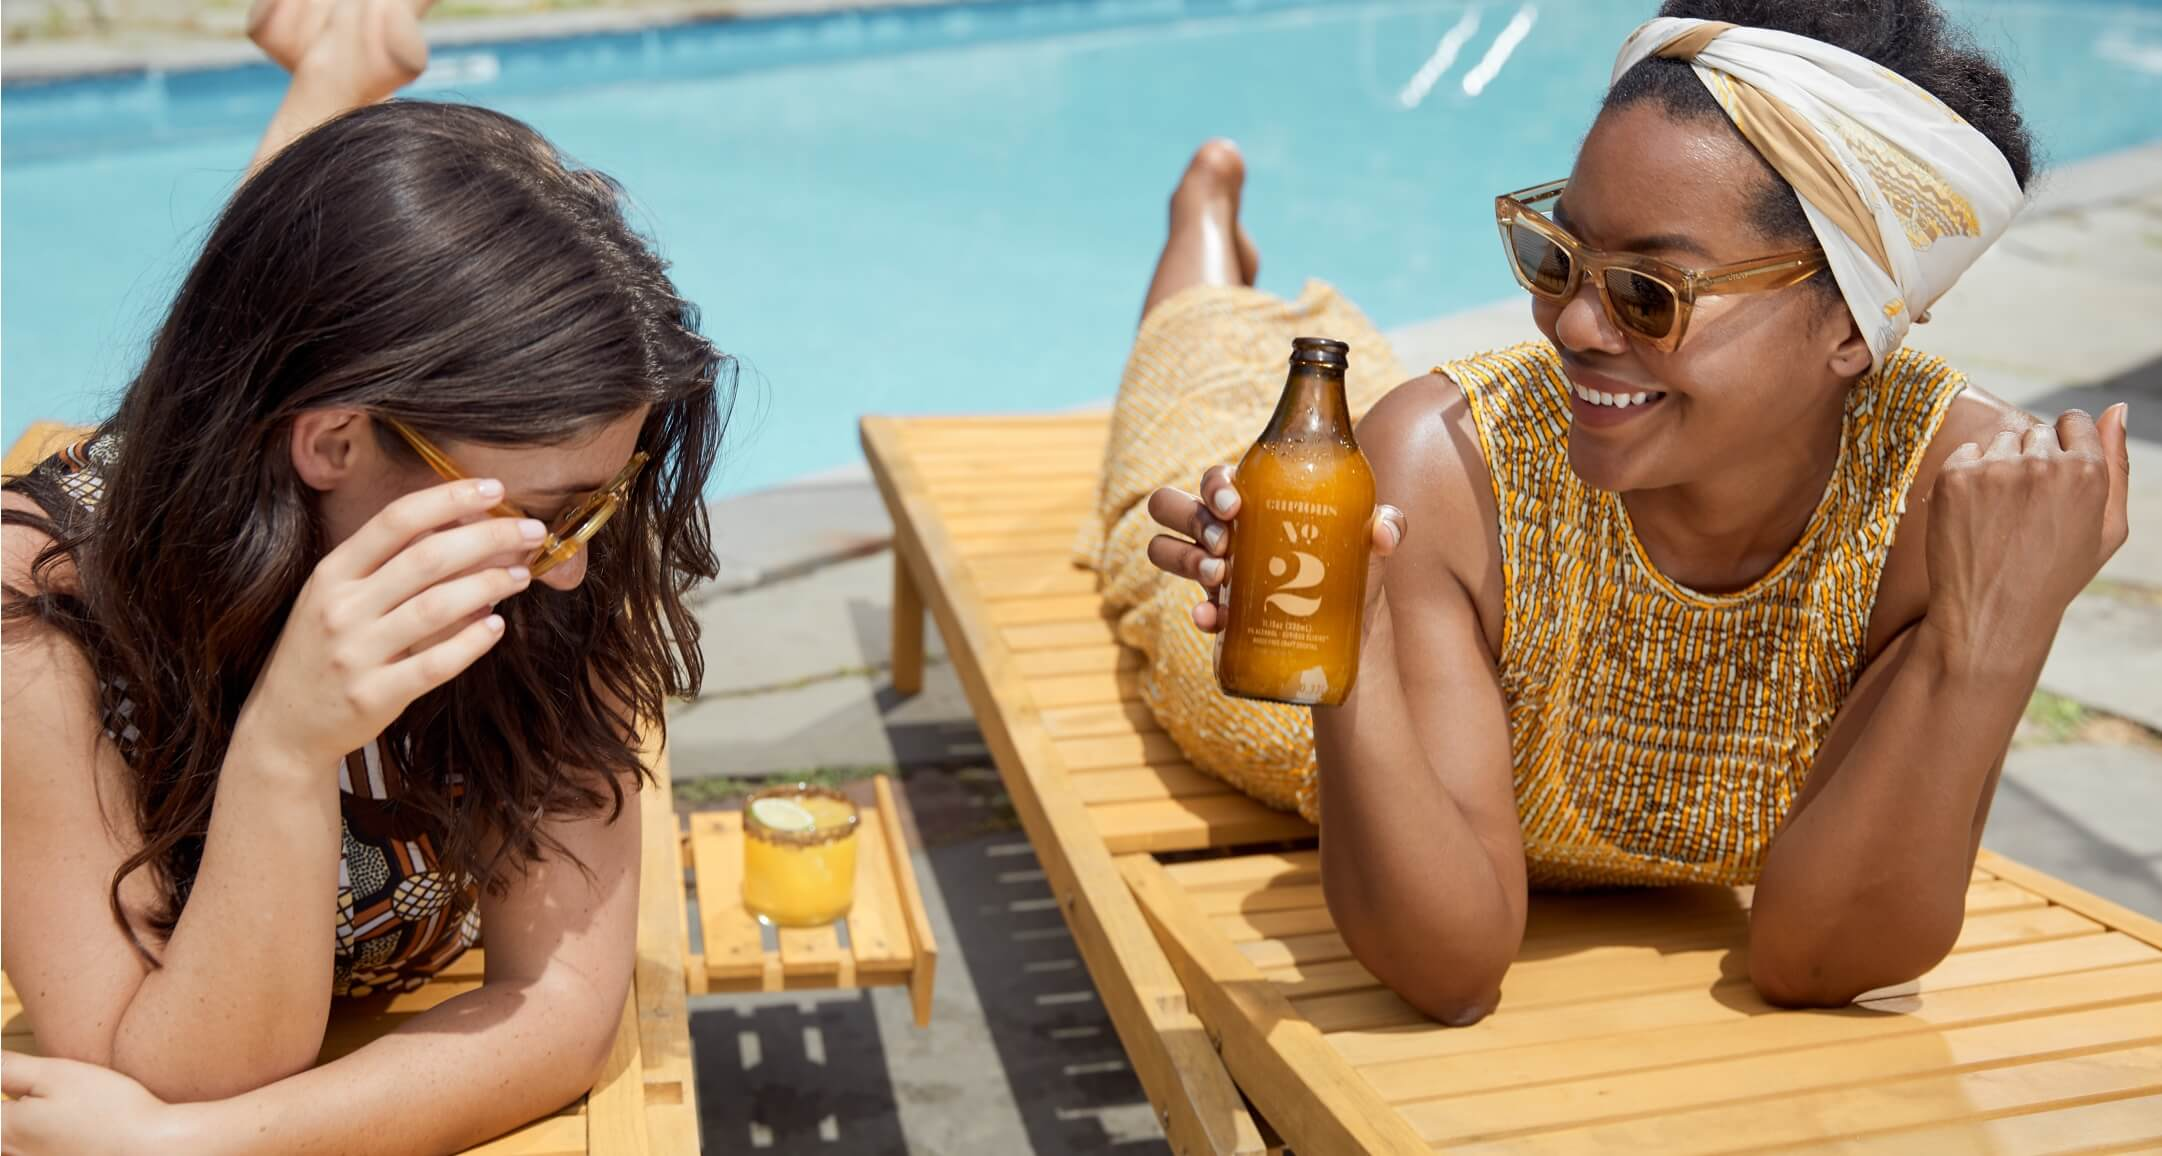 A photo of two women hanging out next to a pool, enjoying a refreshing Curious Elixirs alcohol-free cocktail